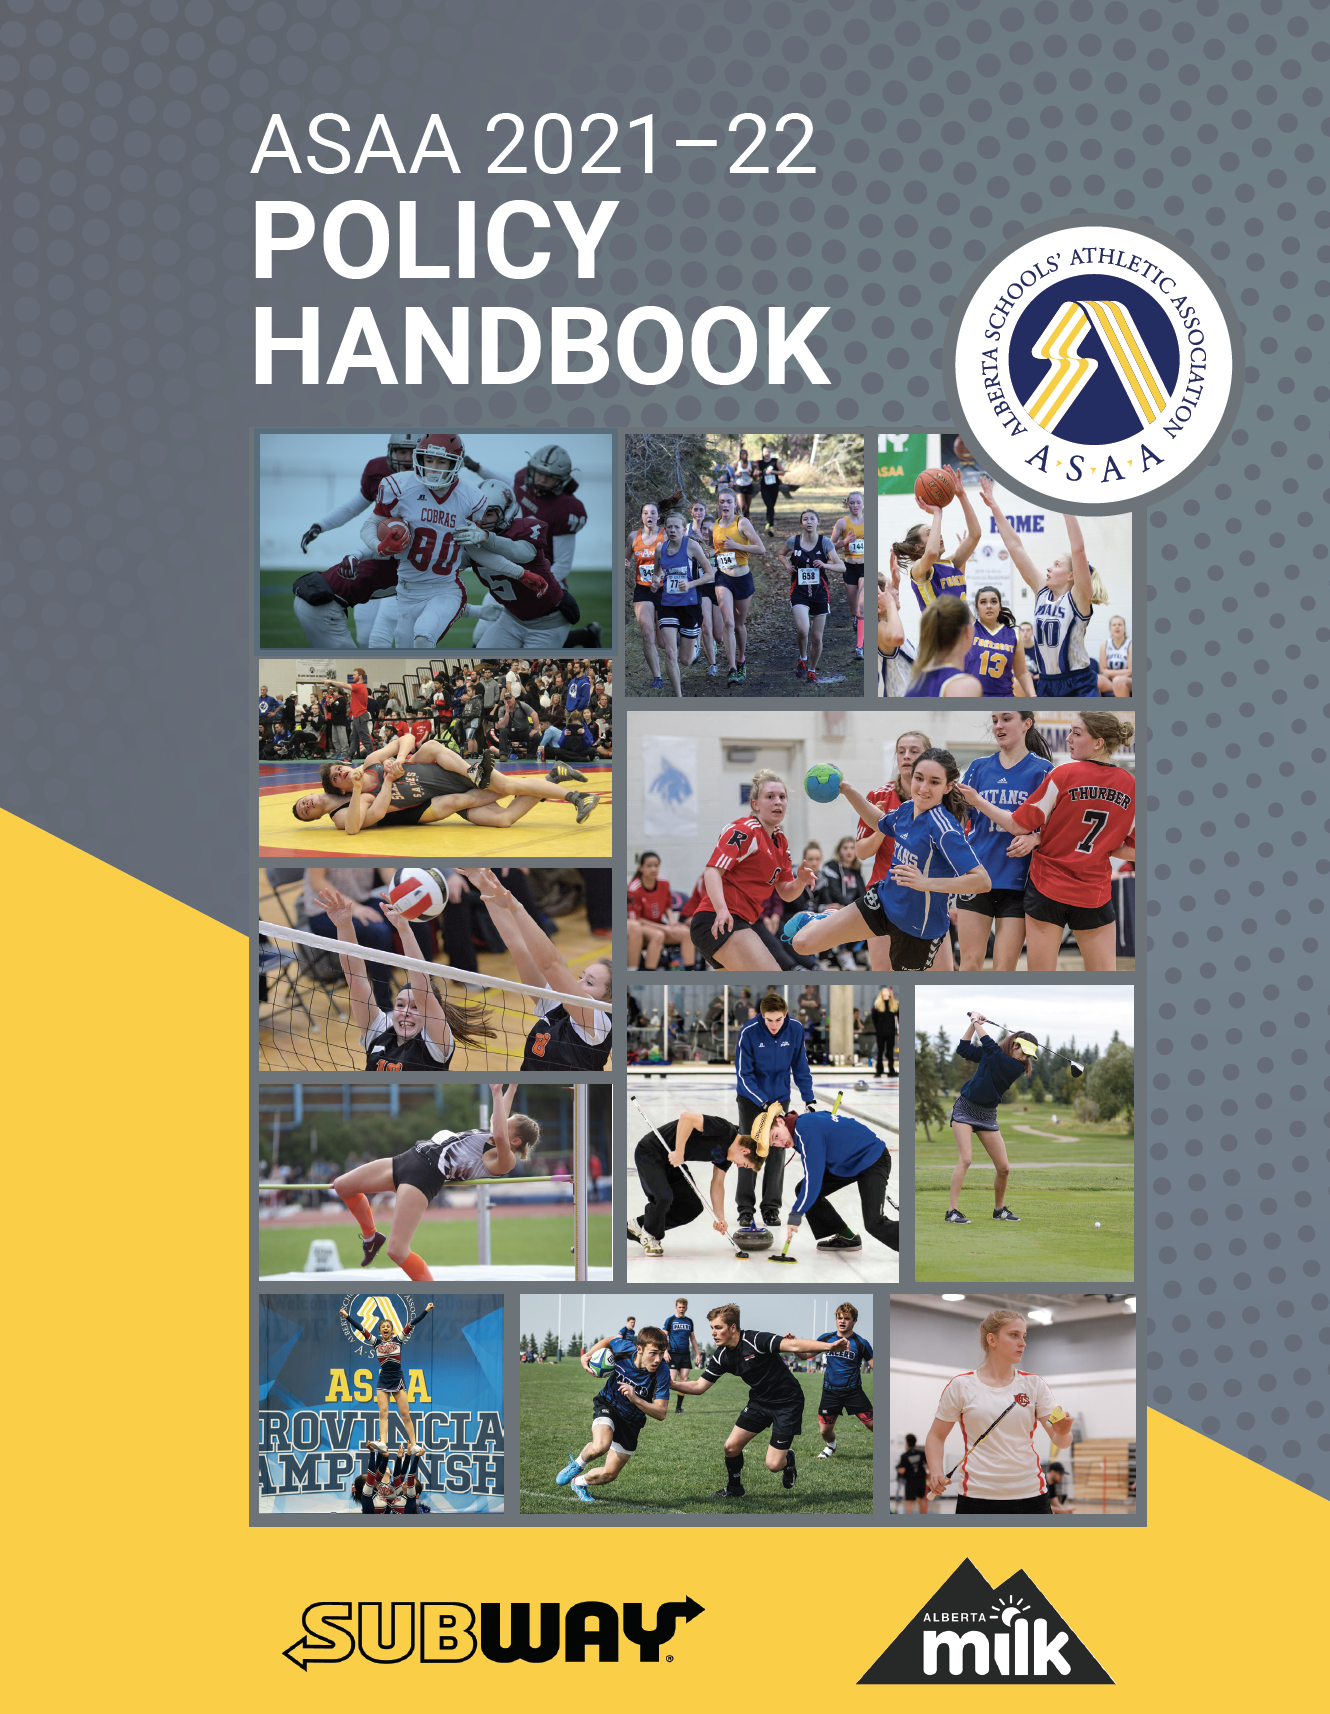 Cover Page of ASAA Policy Handbook 2021-22